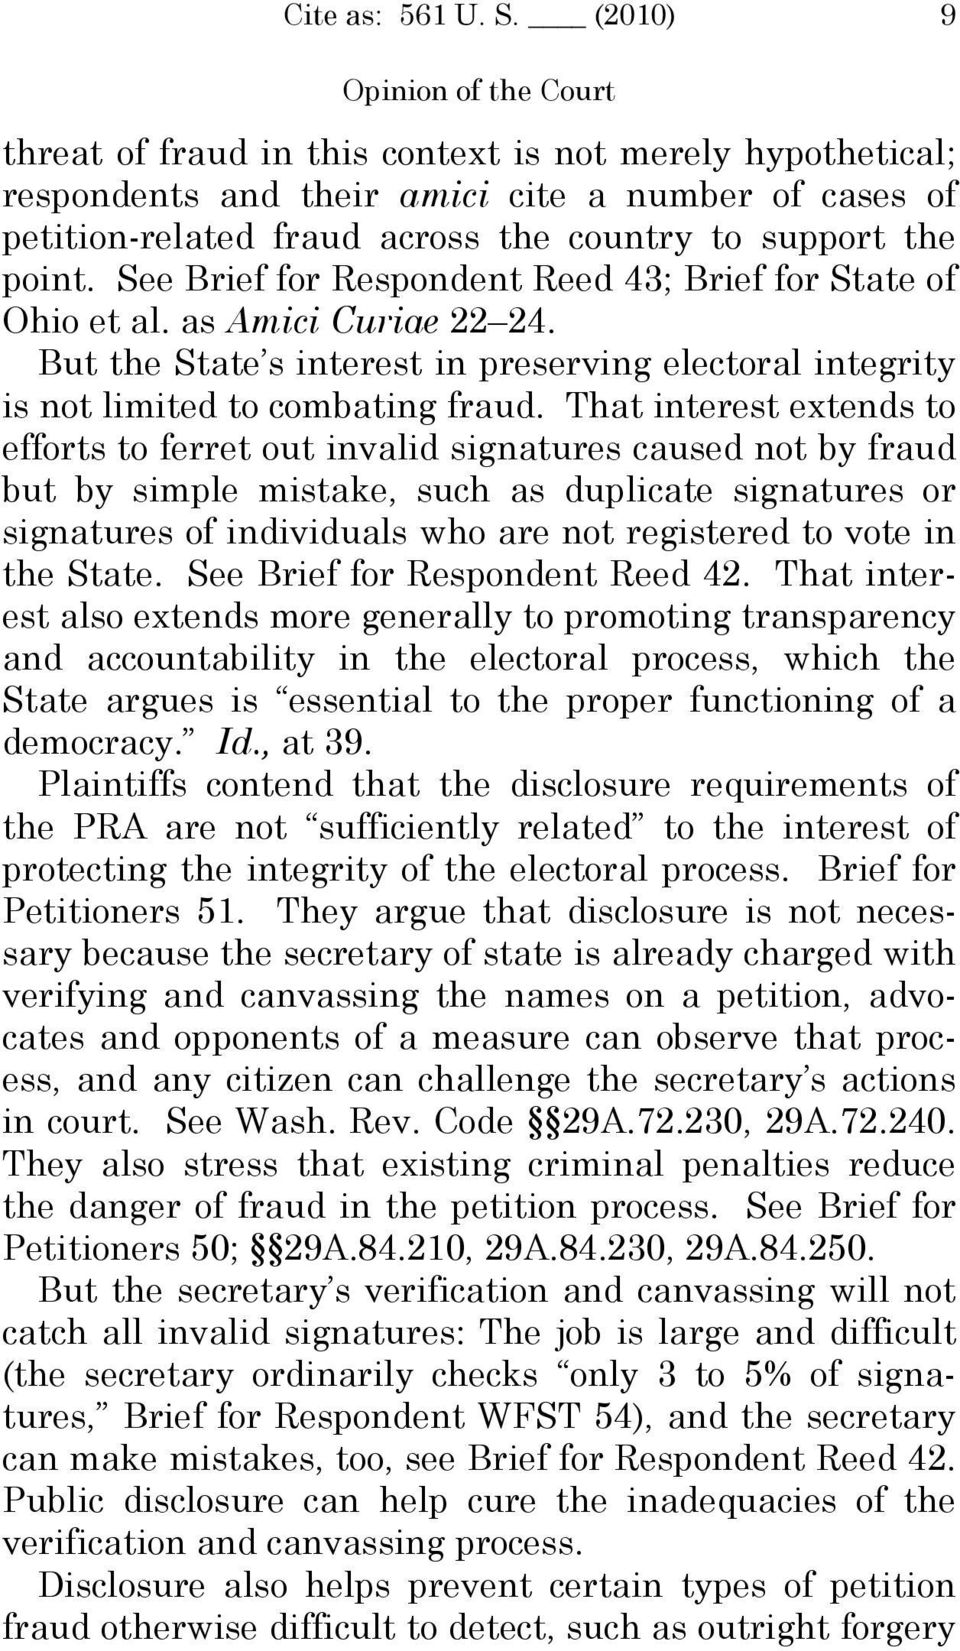 That interest extends to efforts to ferret out invalid signatures caused not by fraud but by simple mistake, such as duplicate signatures or signatures of individuals who are not registered to vote